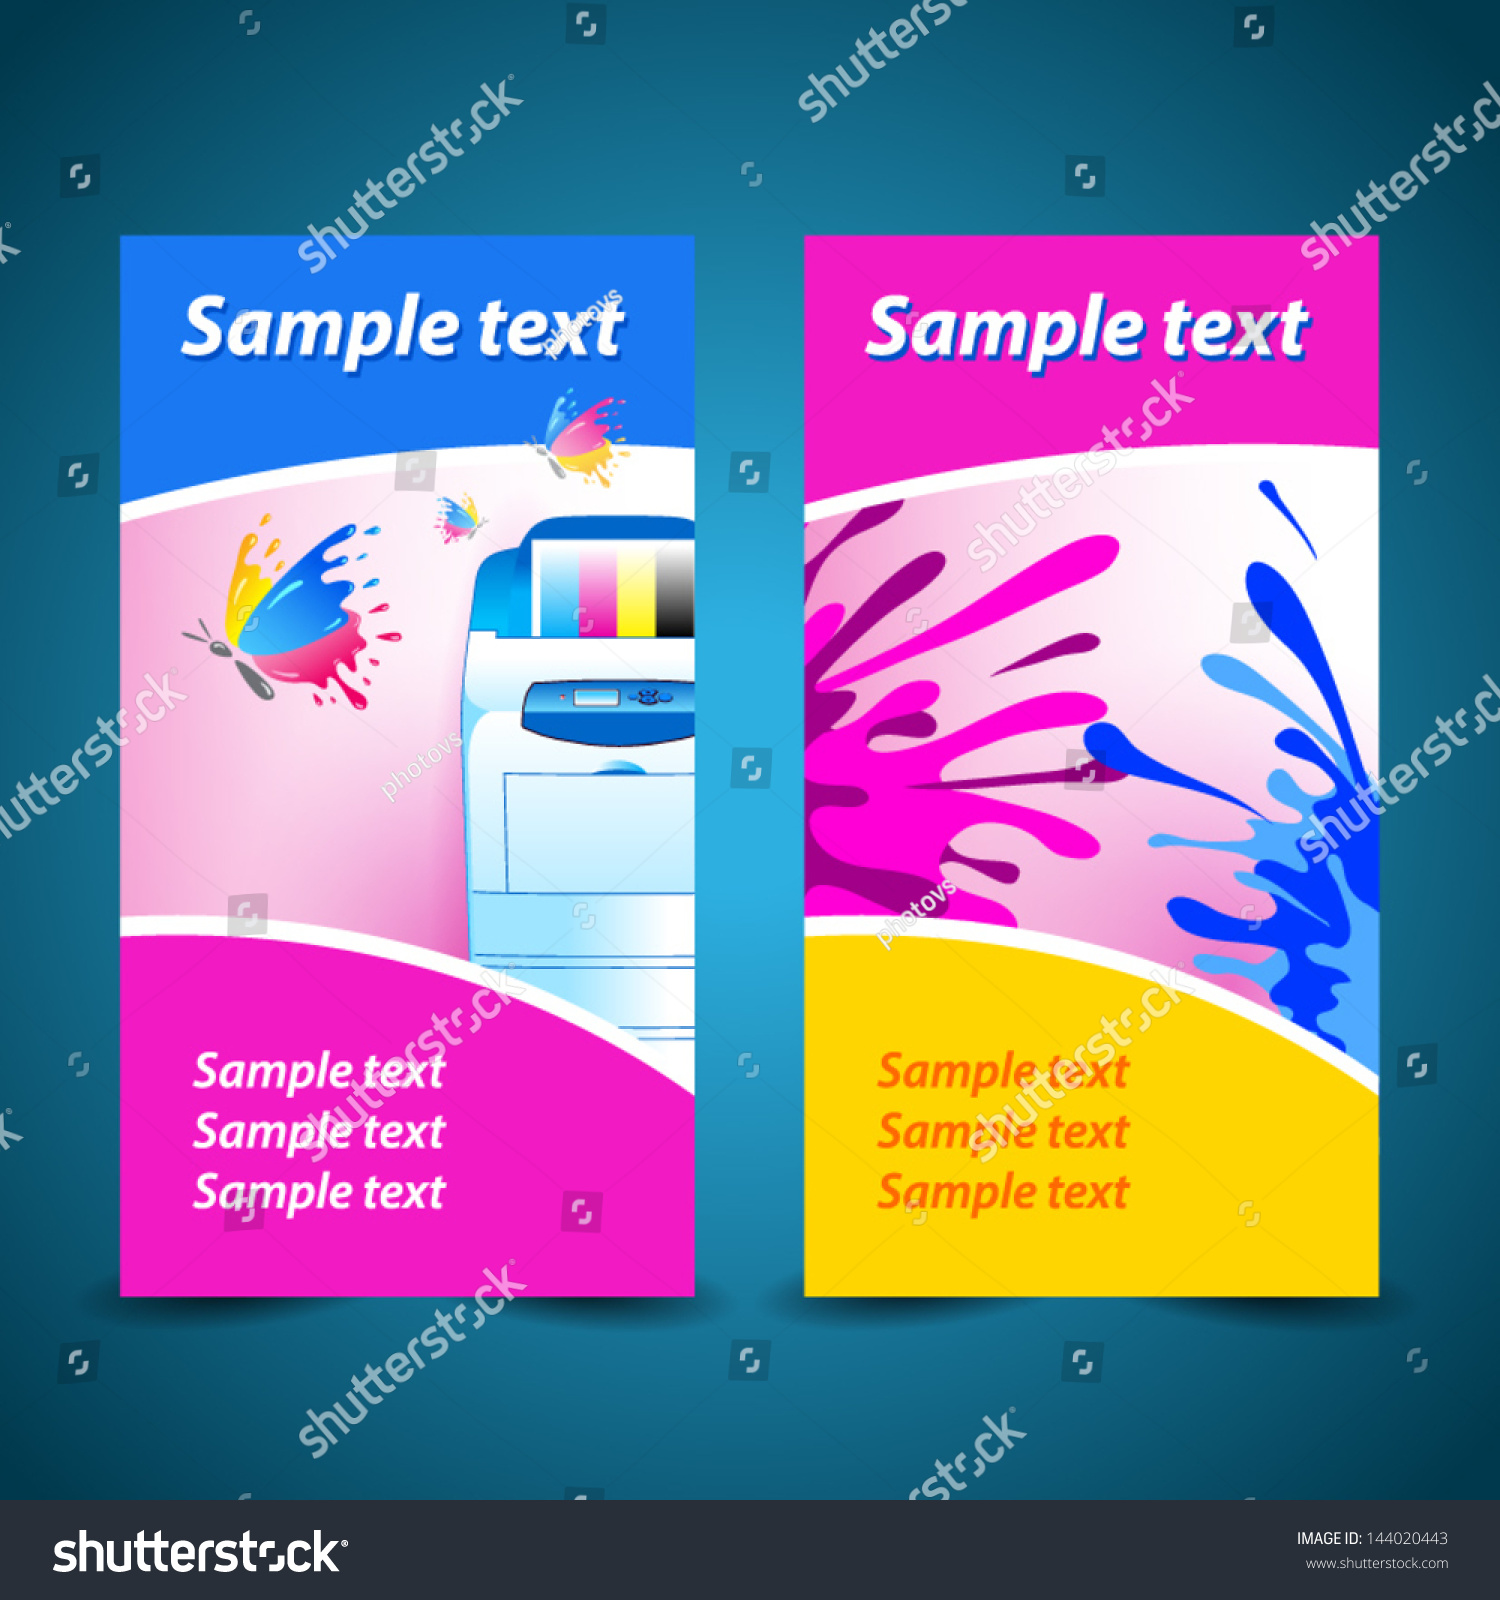 Banner Print Printer Background Abstract Blue Stock Vector ...